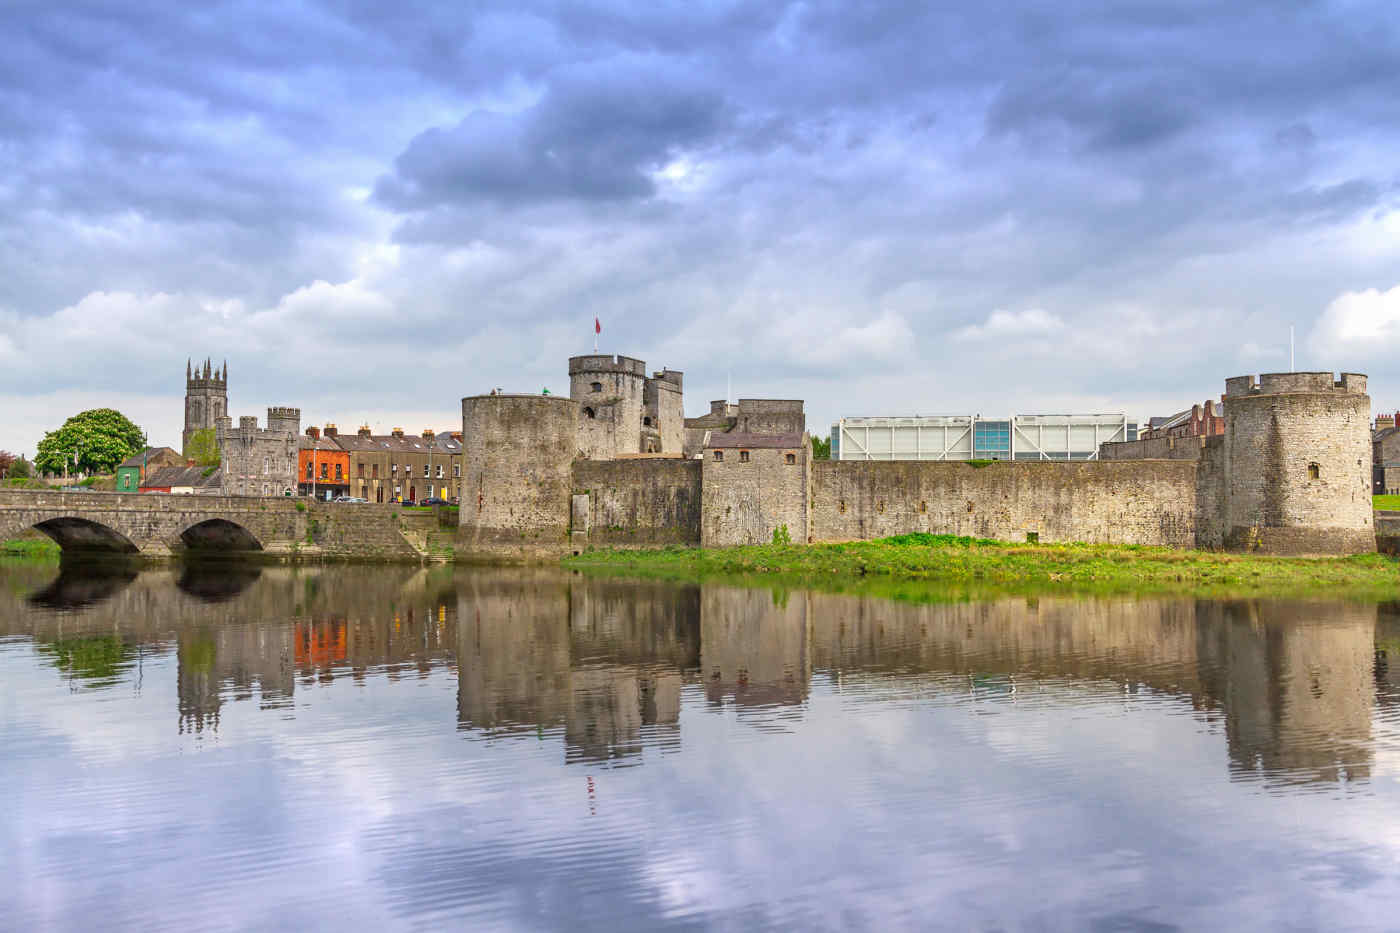 King John's Castle in Limerick, Ireland